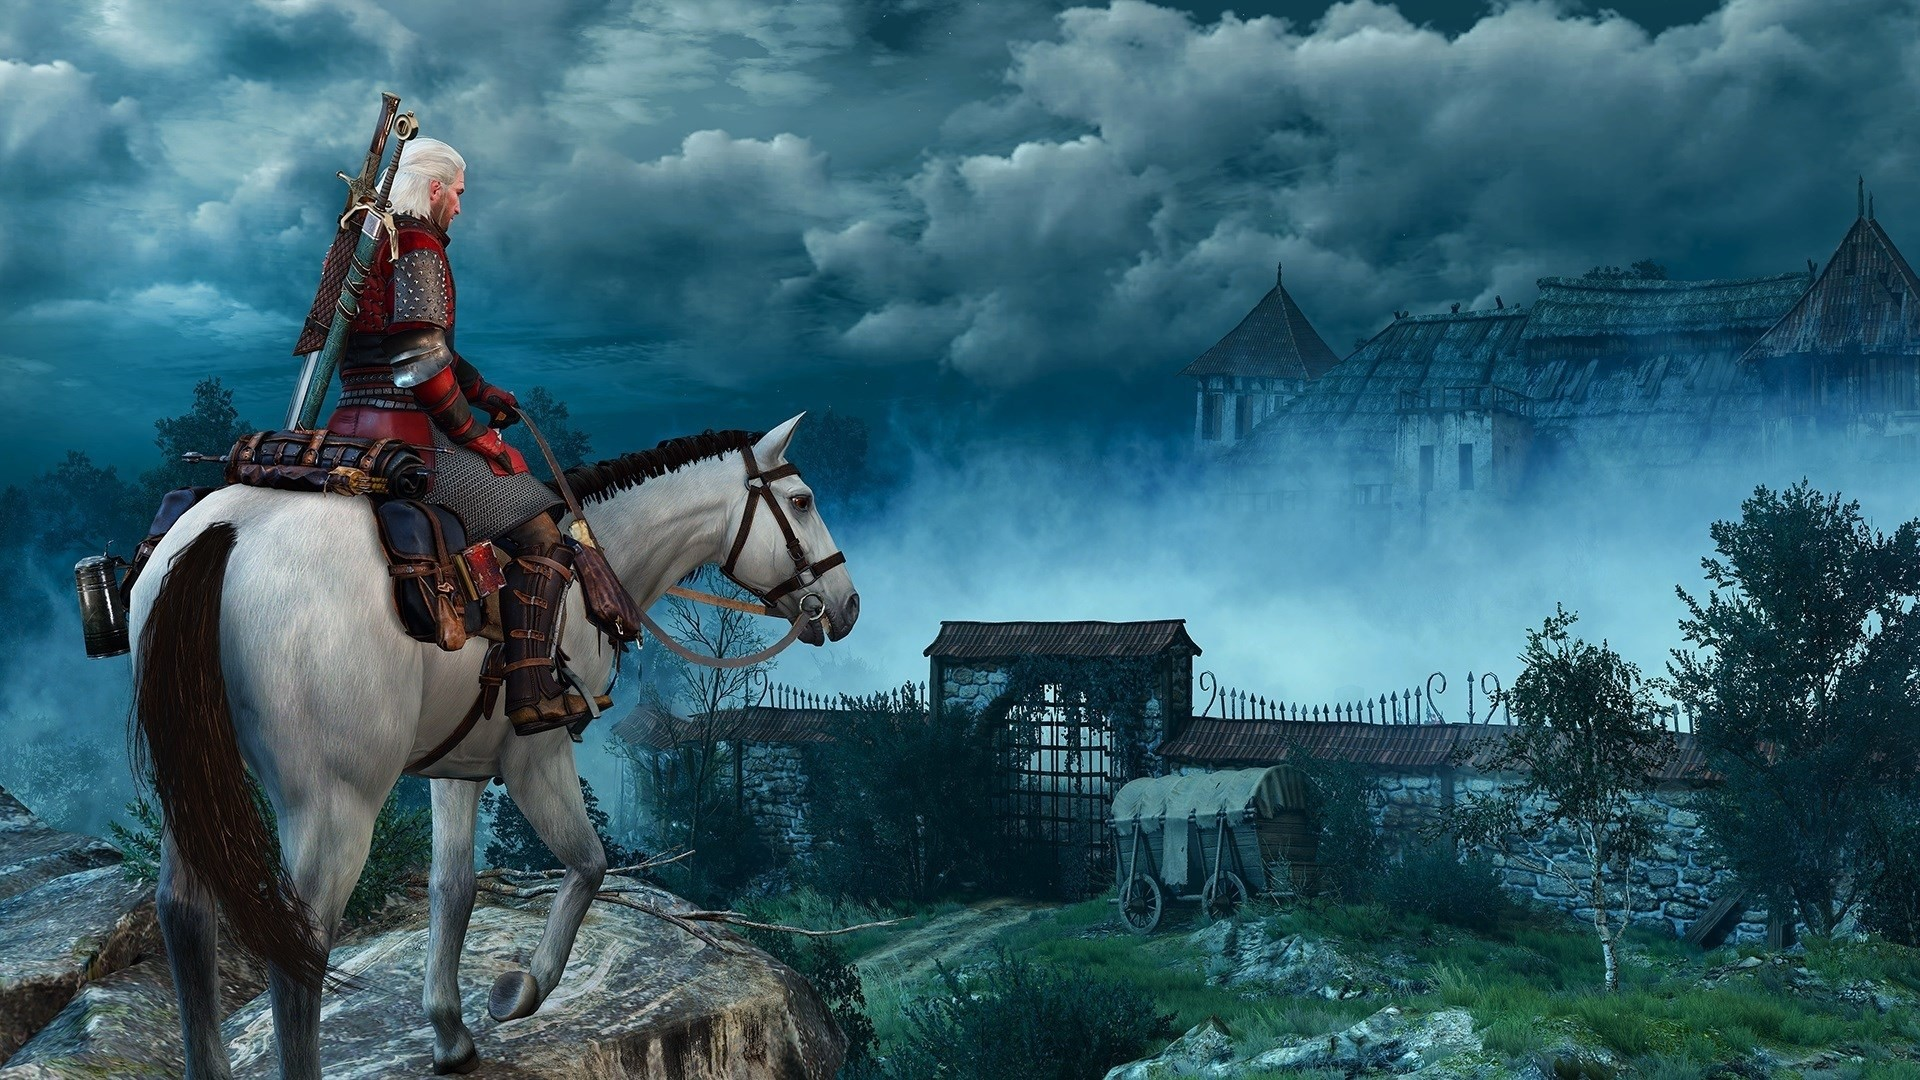 px the witcher 3 wild hunt wallpaper – Full HD Wallpapers, Photos  by Zayden